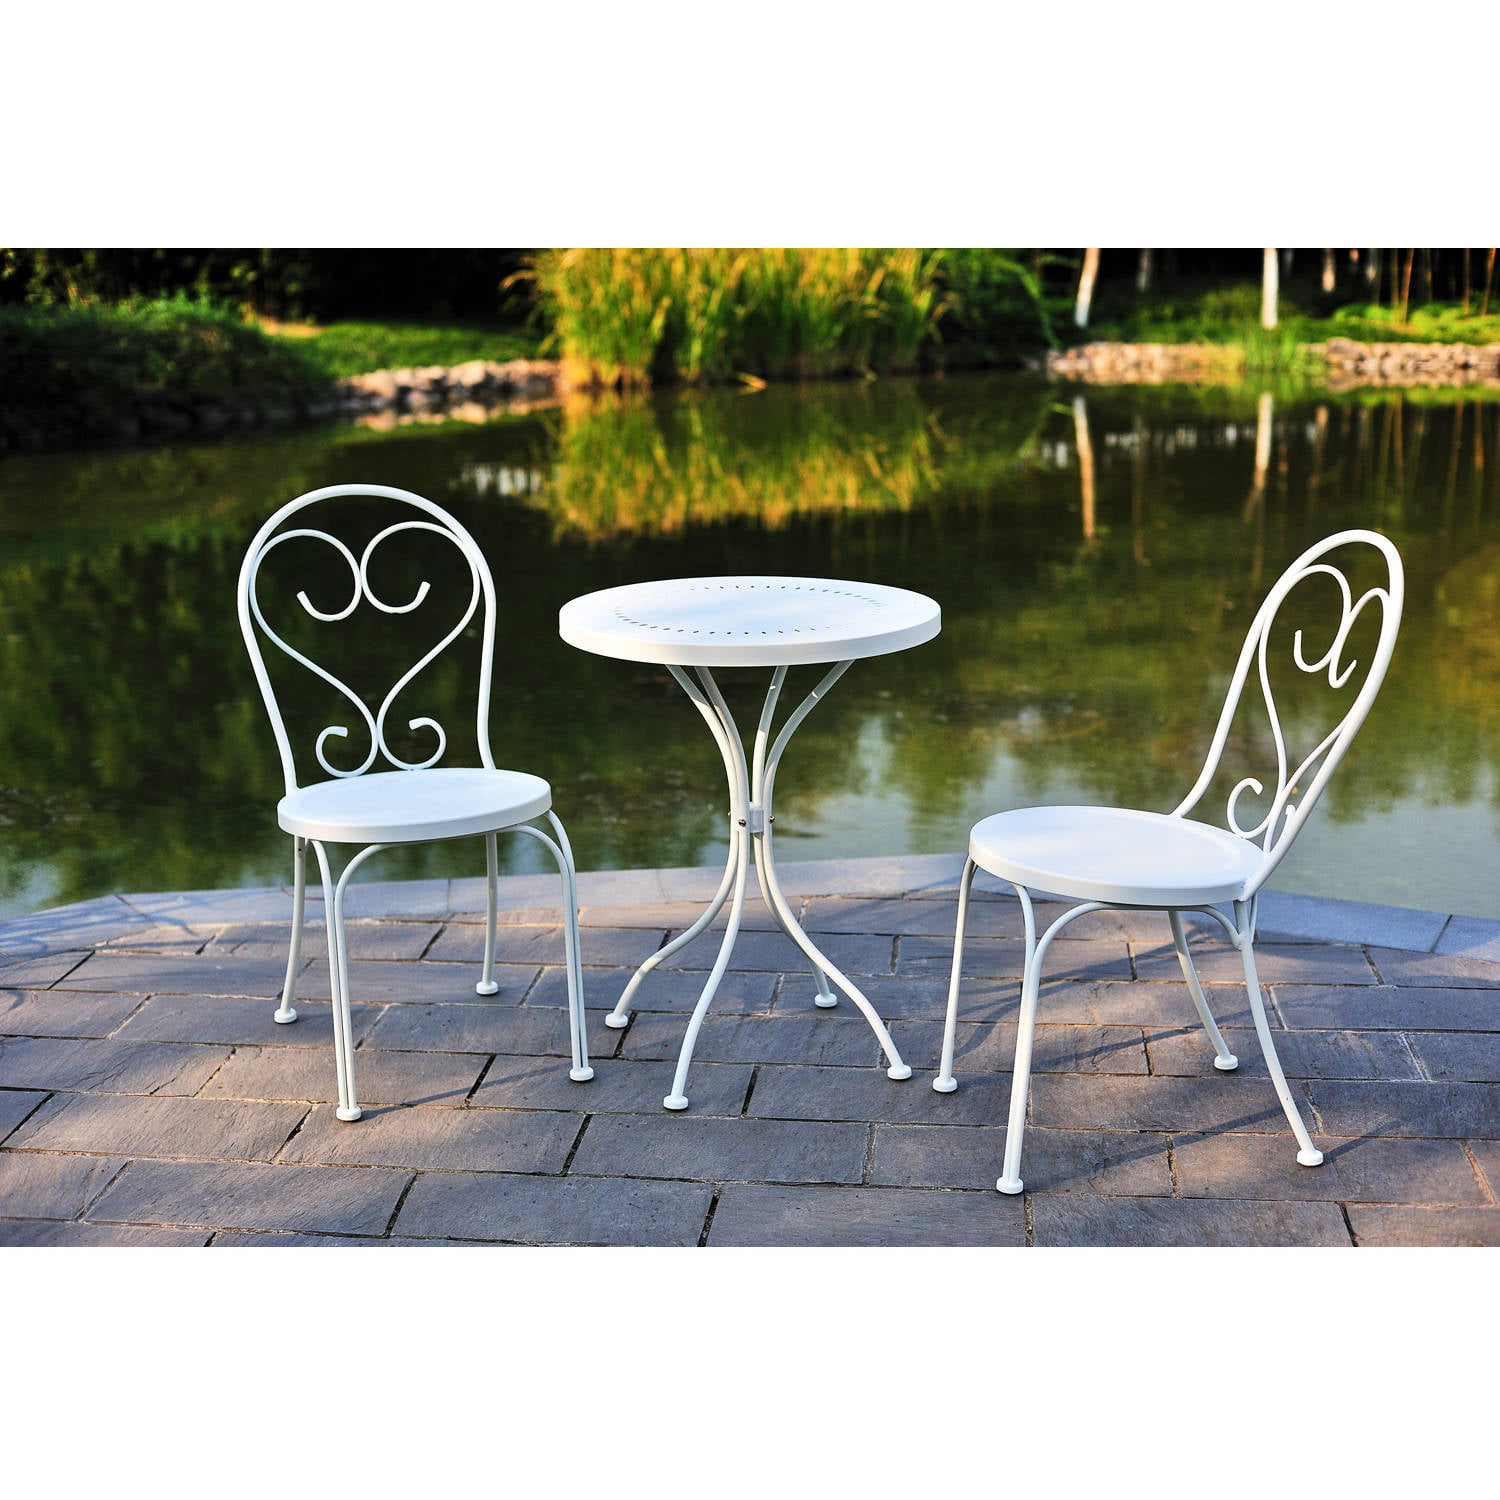 white chairs sets outdoor furniture for small spaces | MS 3pc Small Space Scroll Outdoor Bistro Set, White ...